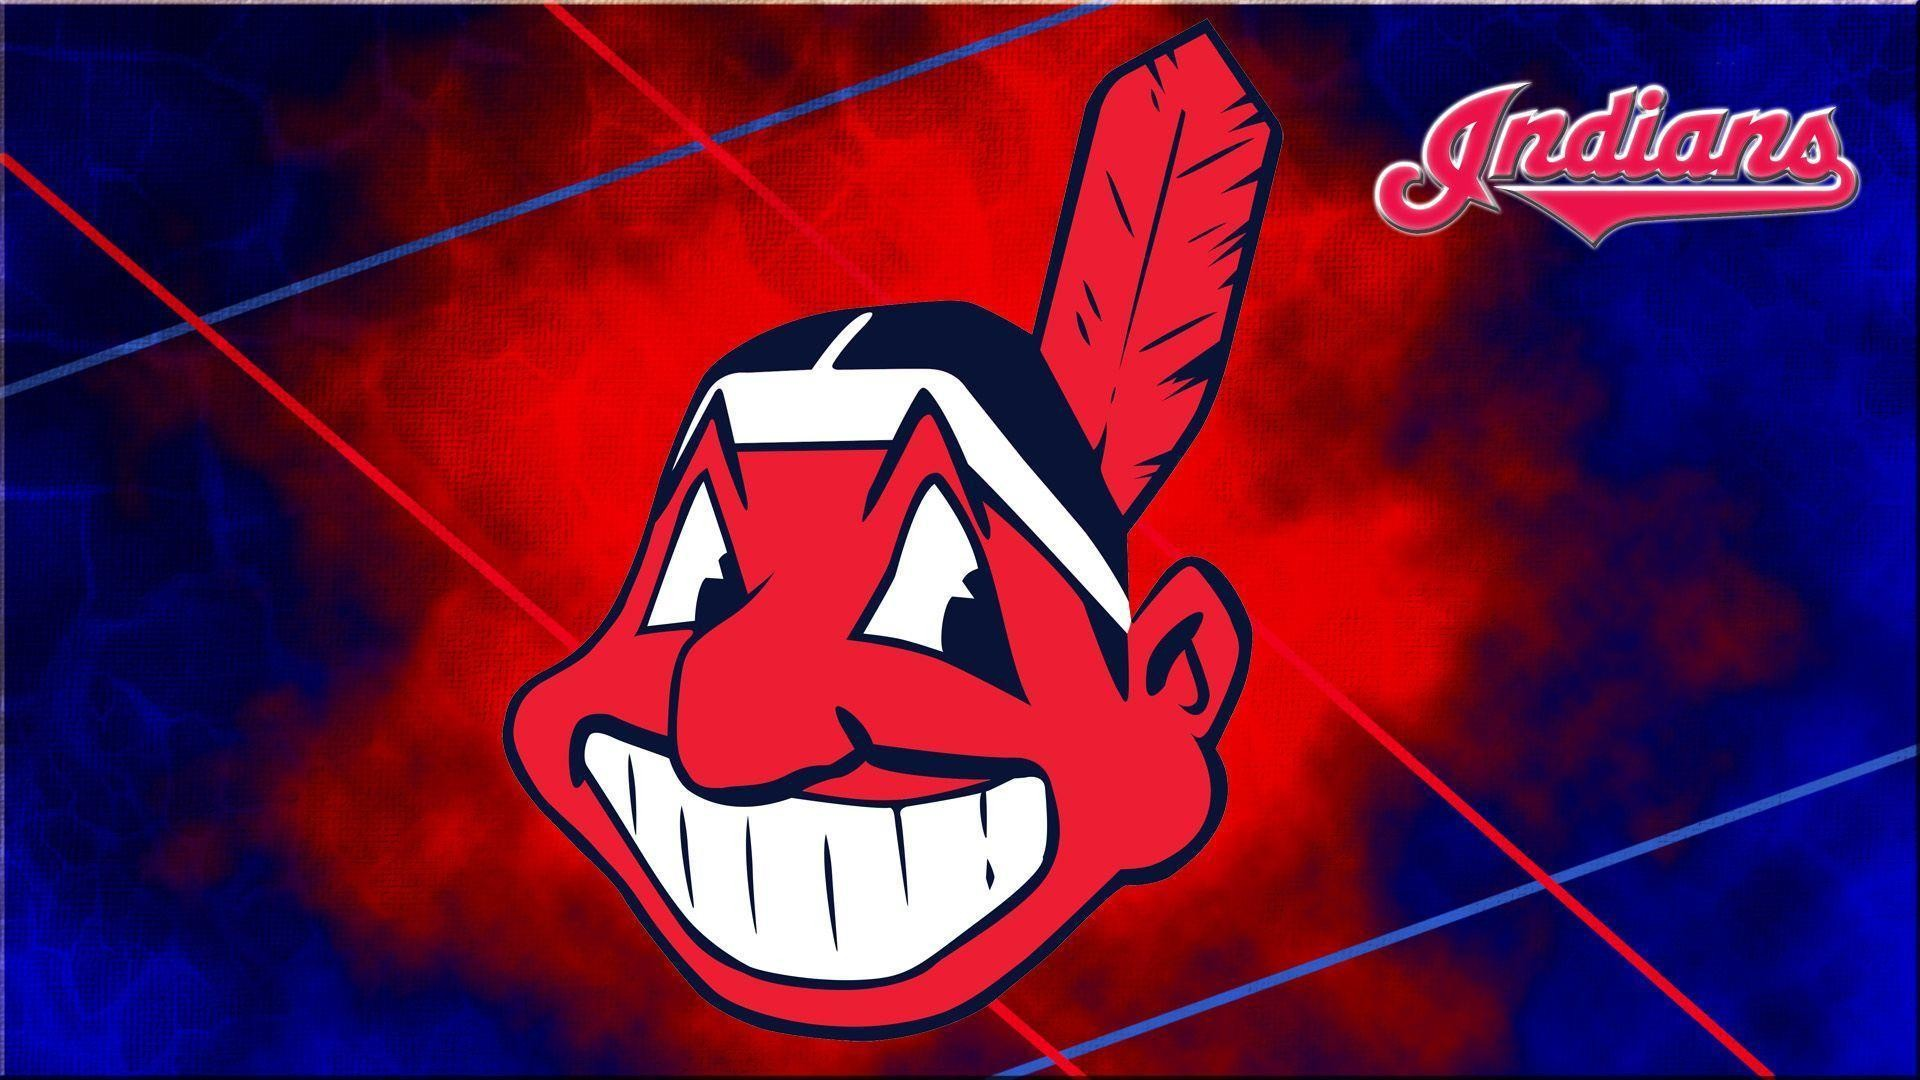 1920x1080 - Cleveland Indians Wallpapers 4